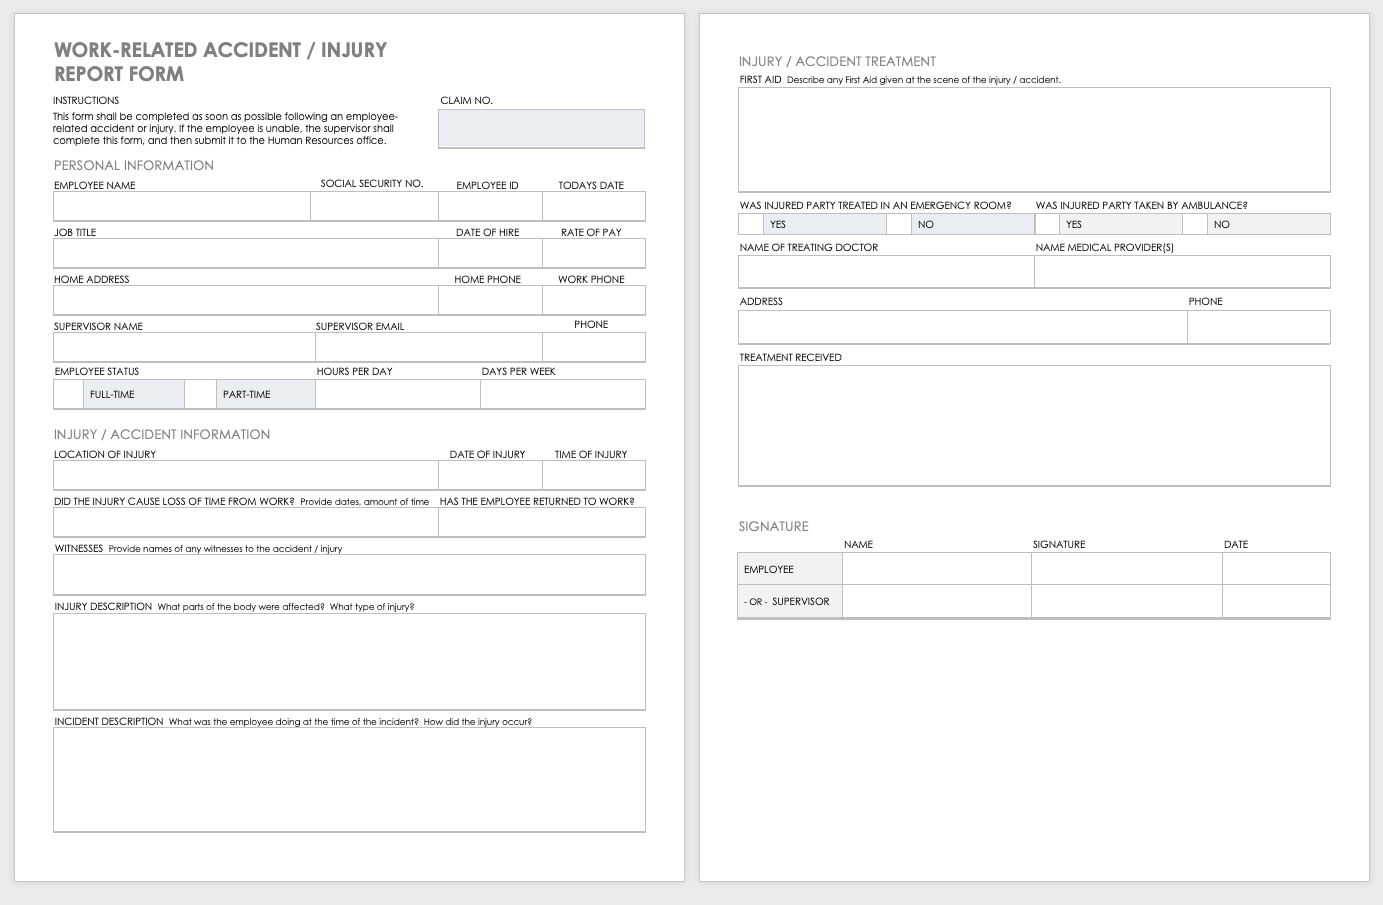 Free Workplace Accident Report Templates | Smartsheet With Injury Report Form Template